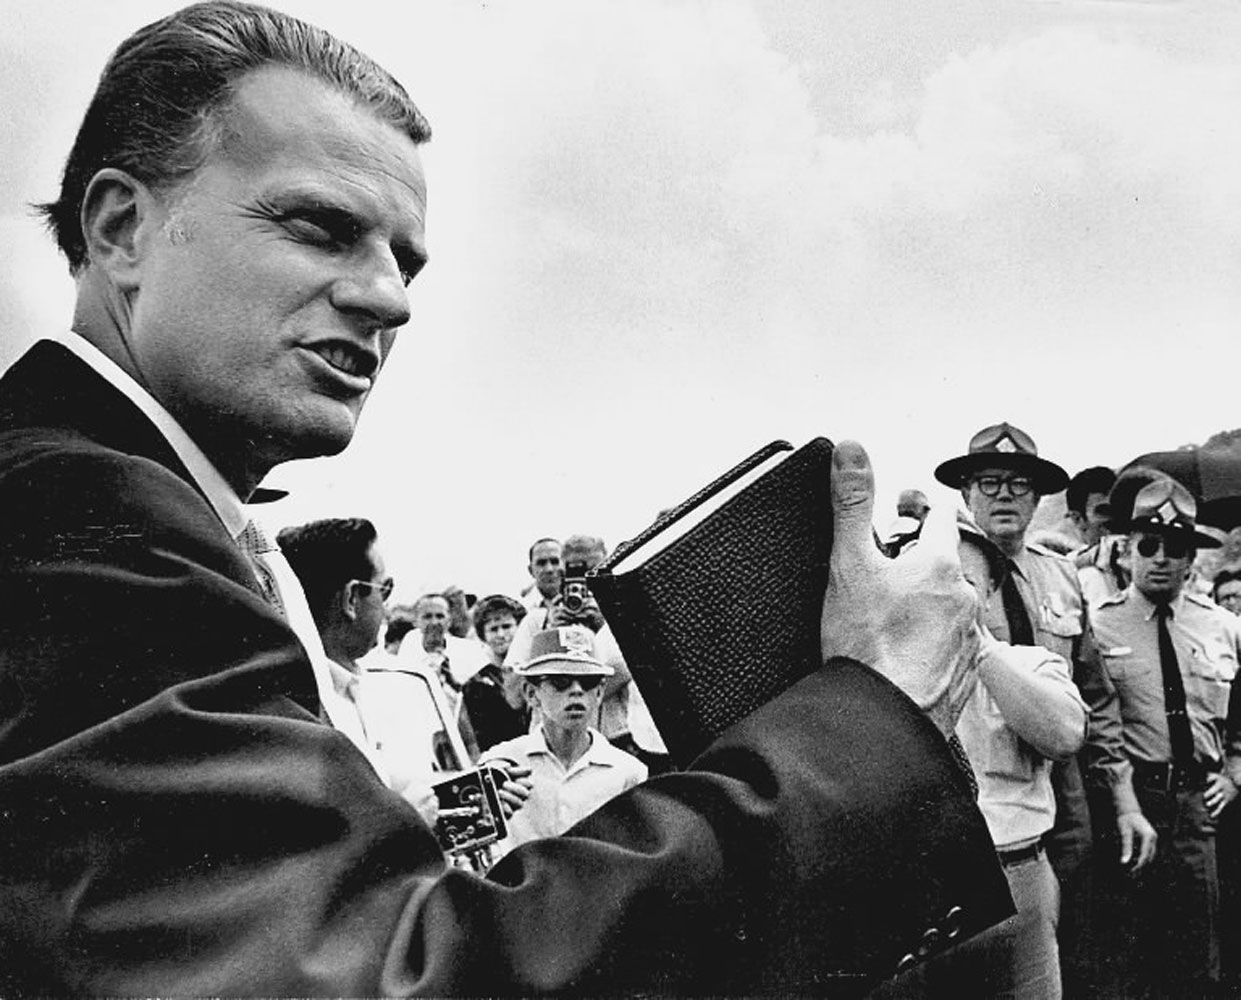 Bible in Hand                                                              Preaching in North Carolina, 1962.